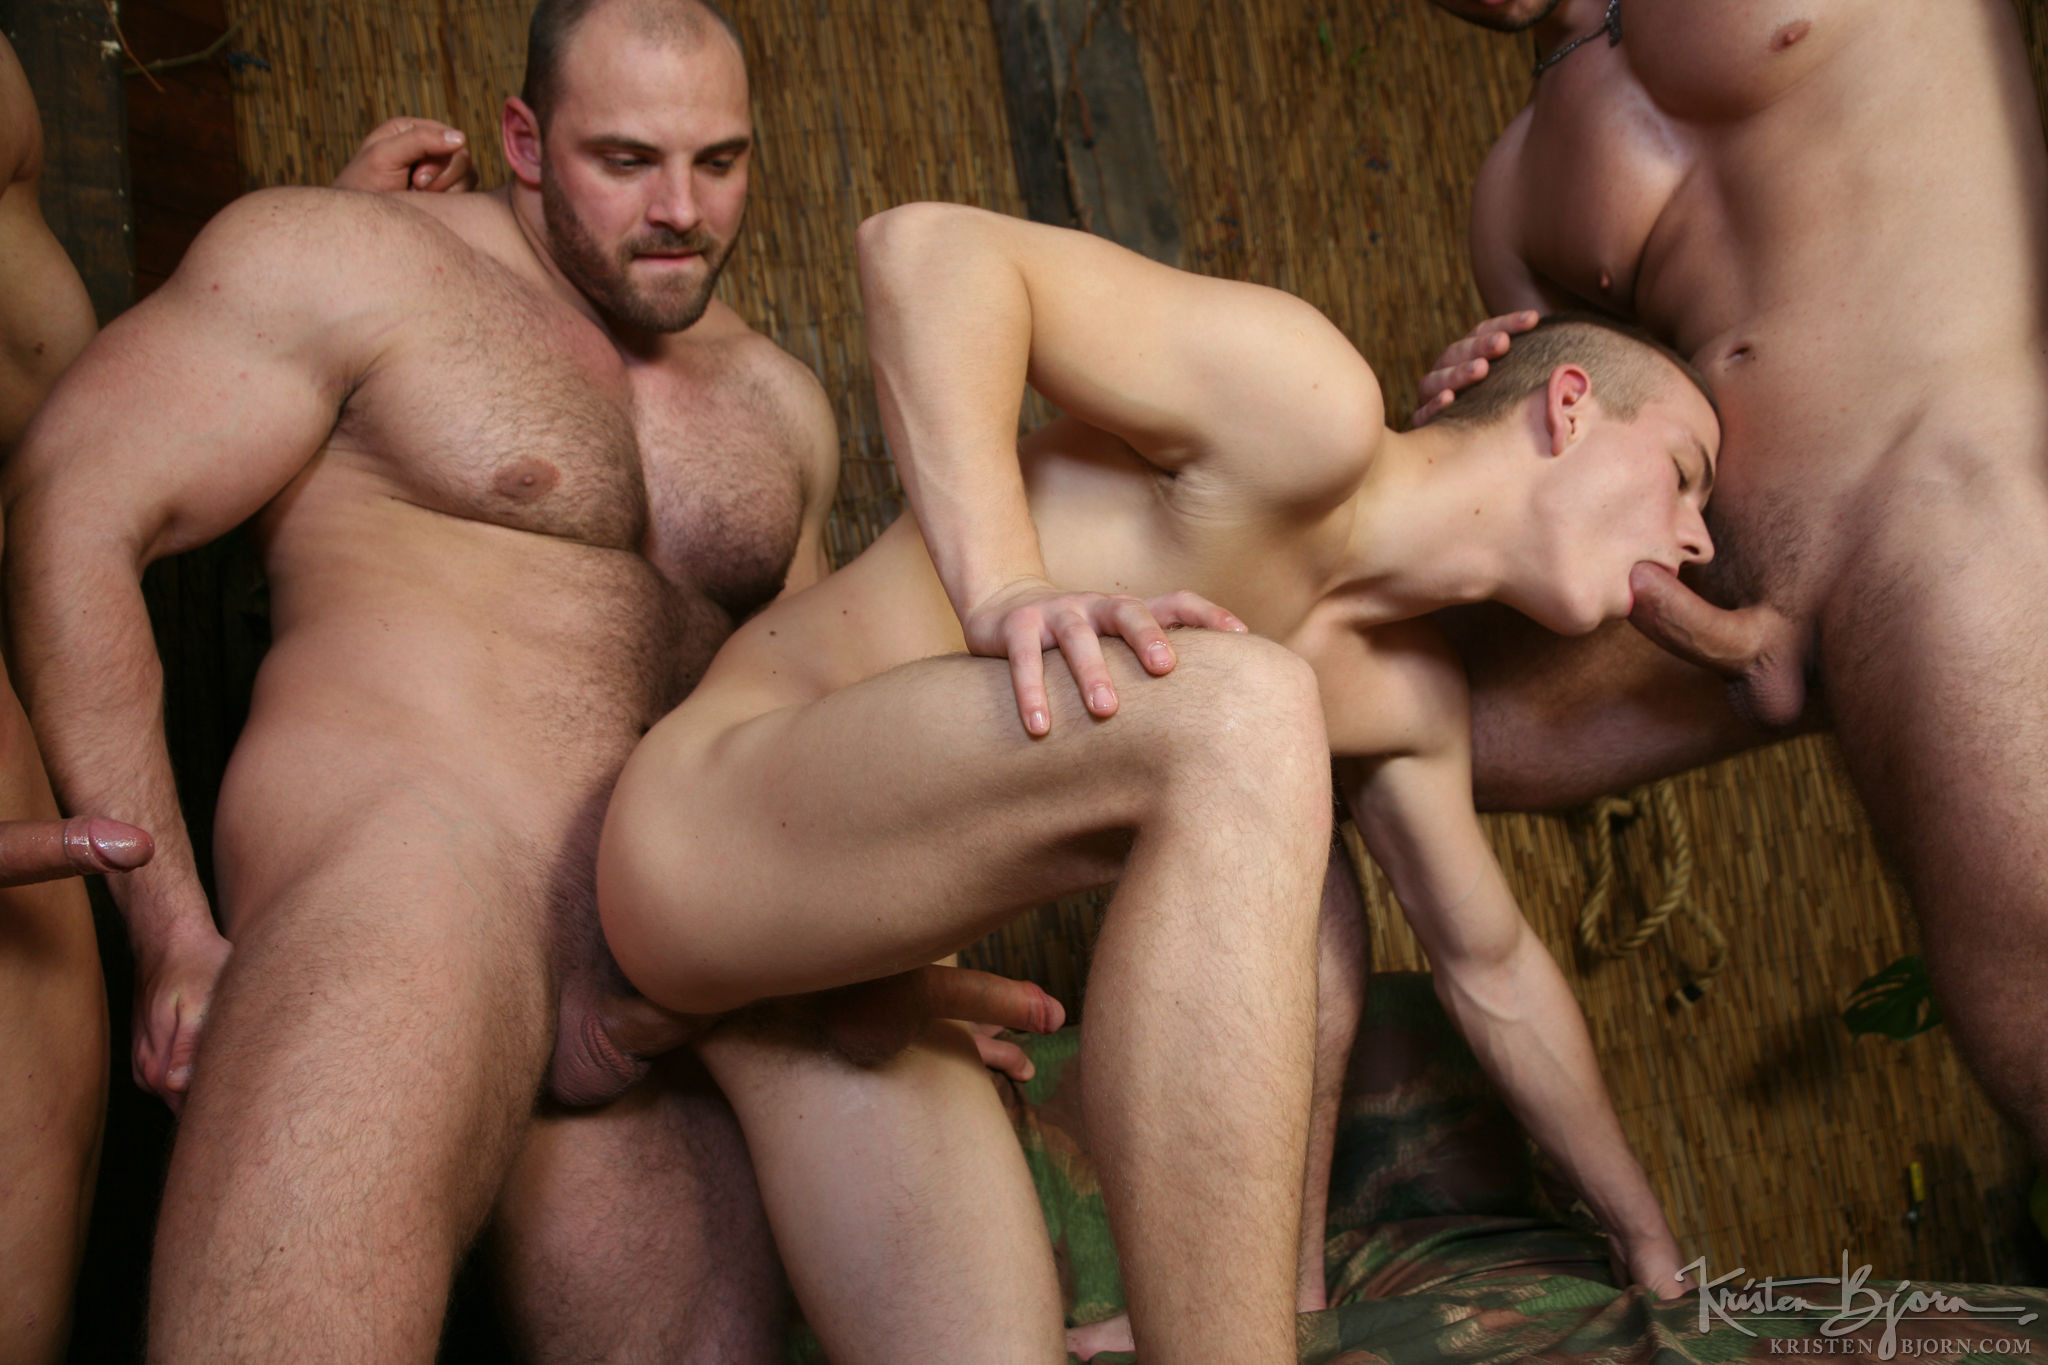 http://www.kristenbjorn.com/files/movies/212/freegallery/large/1462020588045.jpg